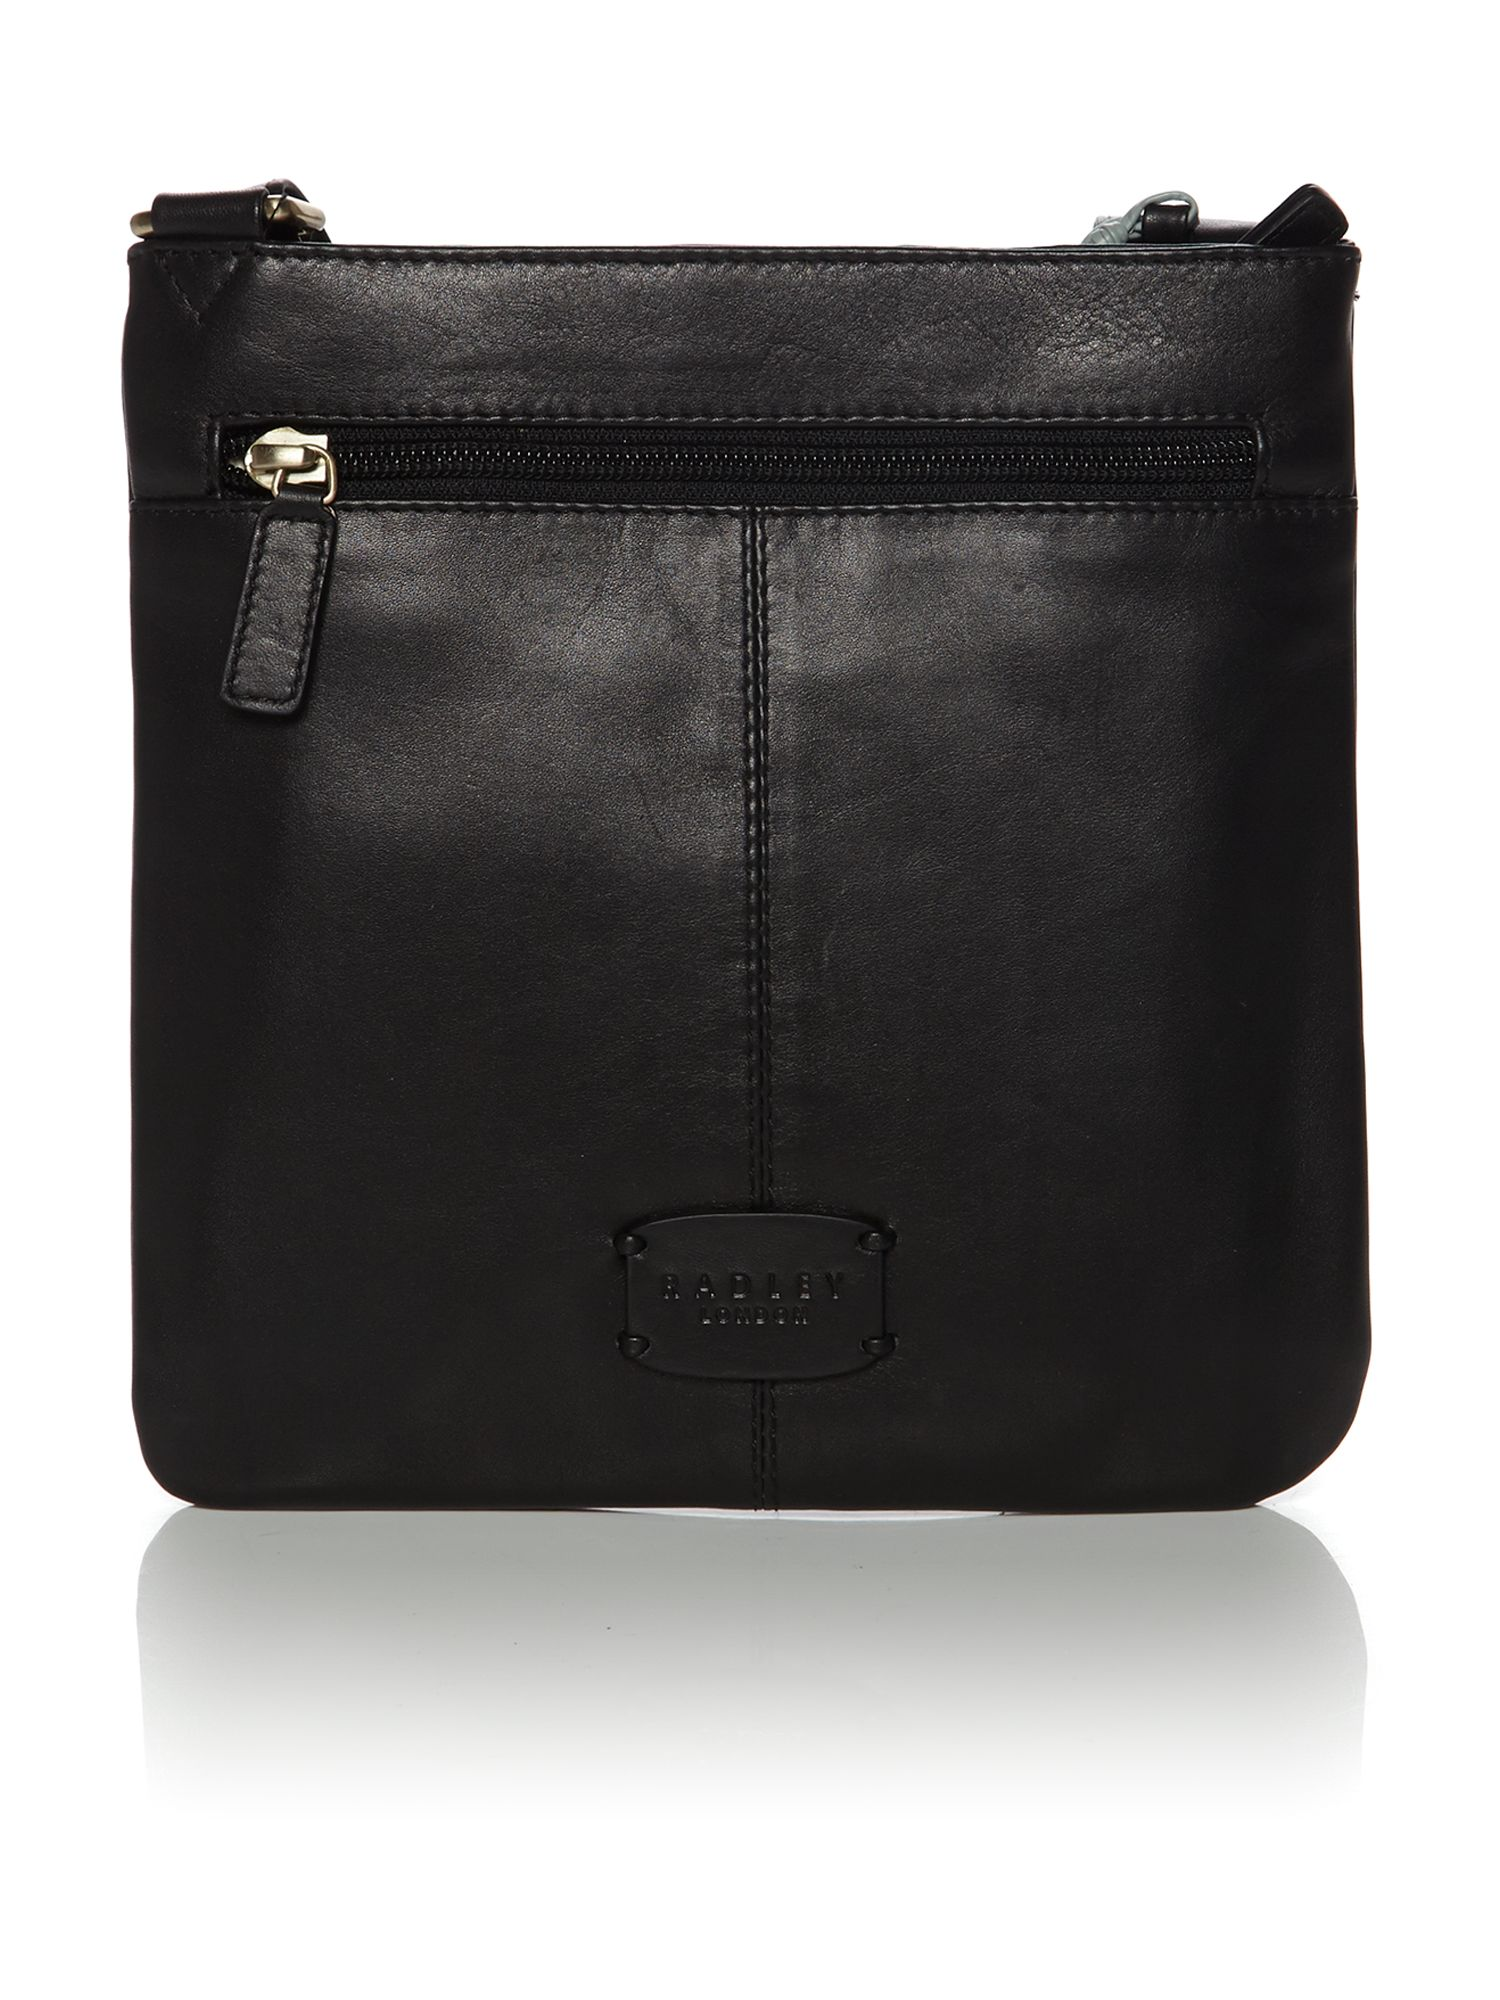 Black small pocket bag